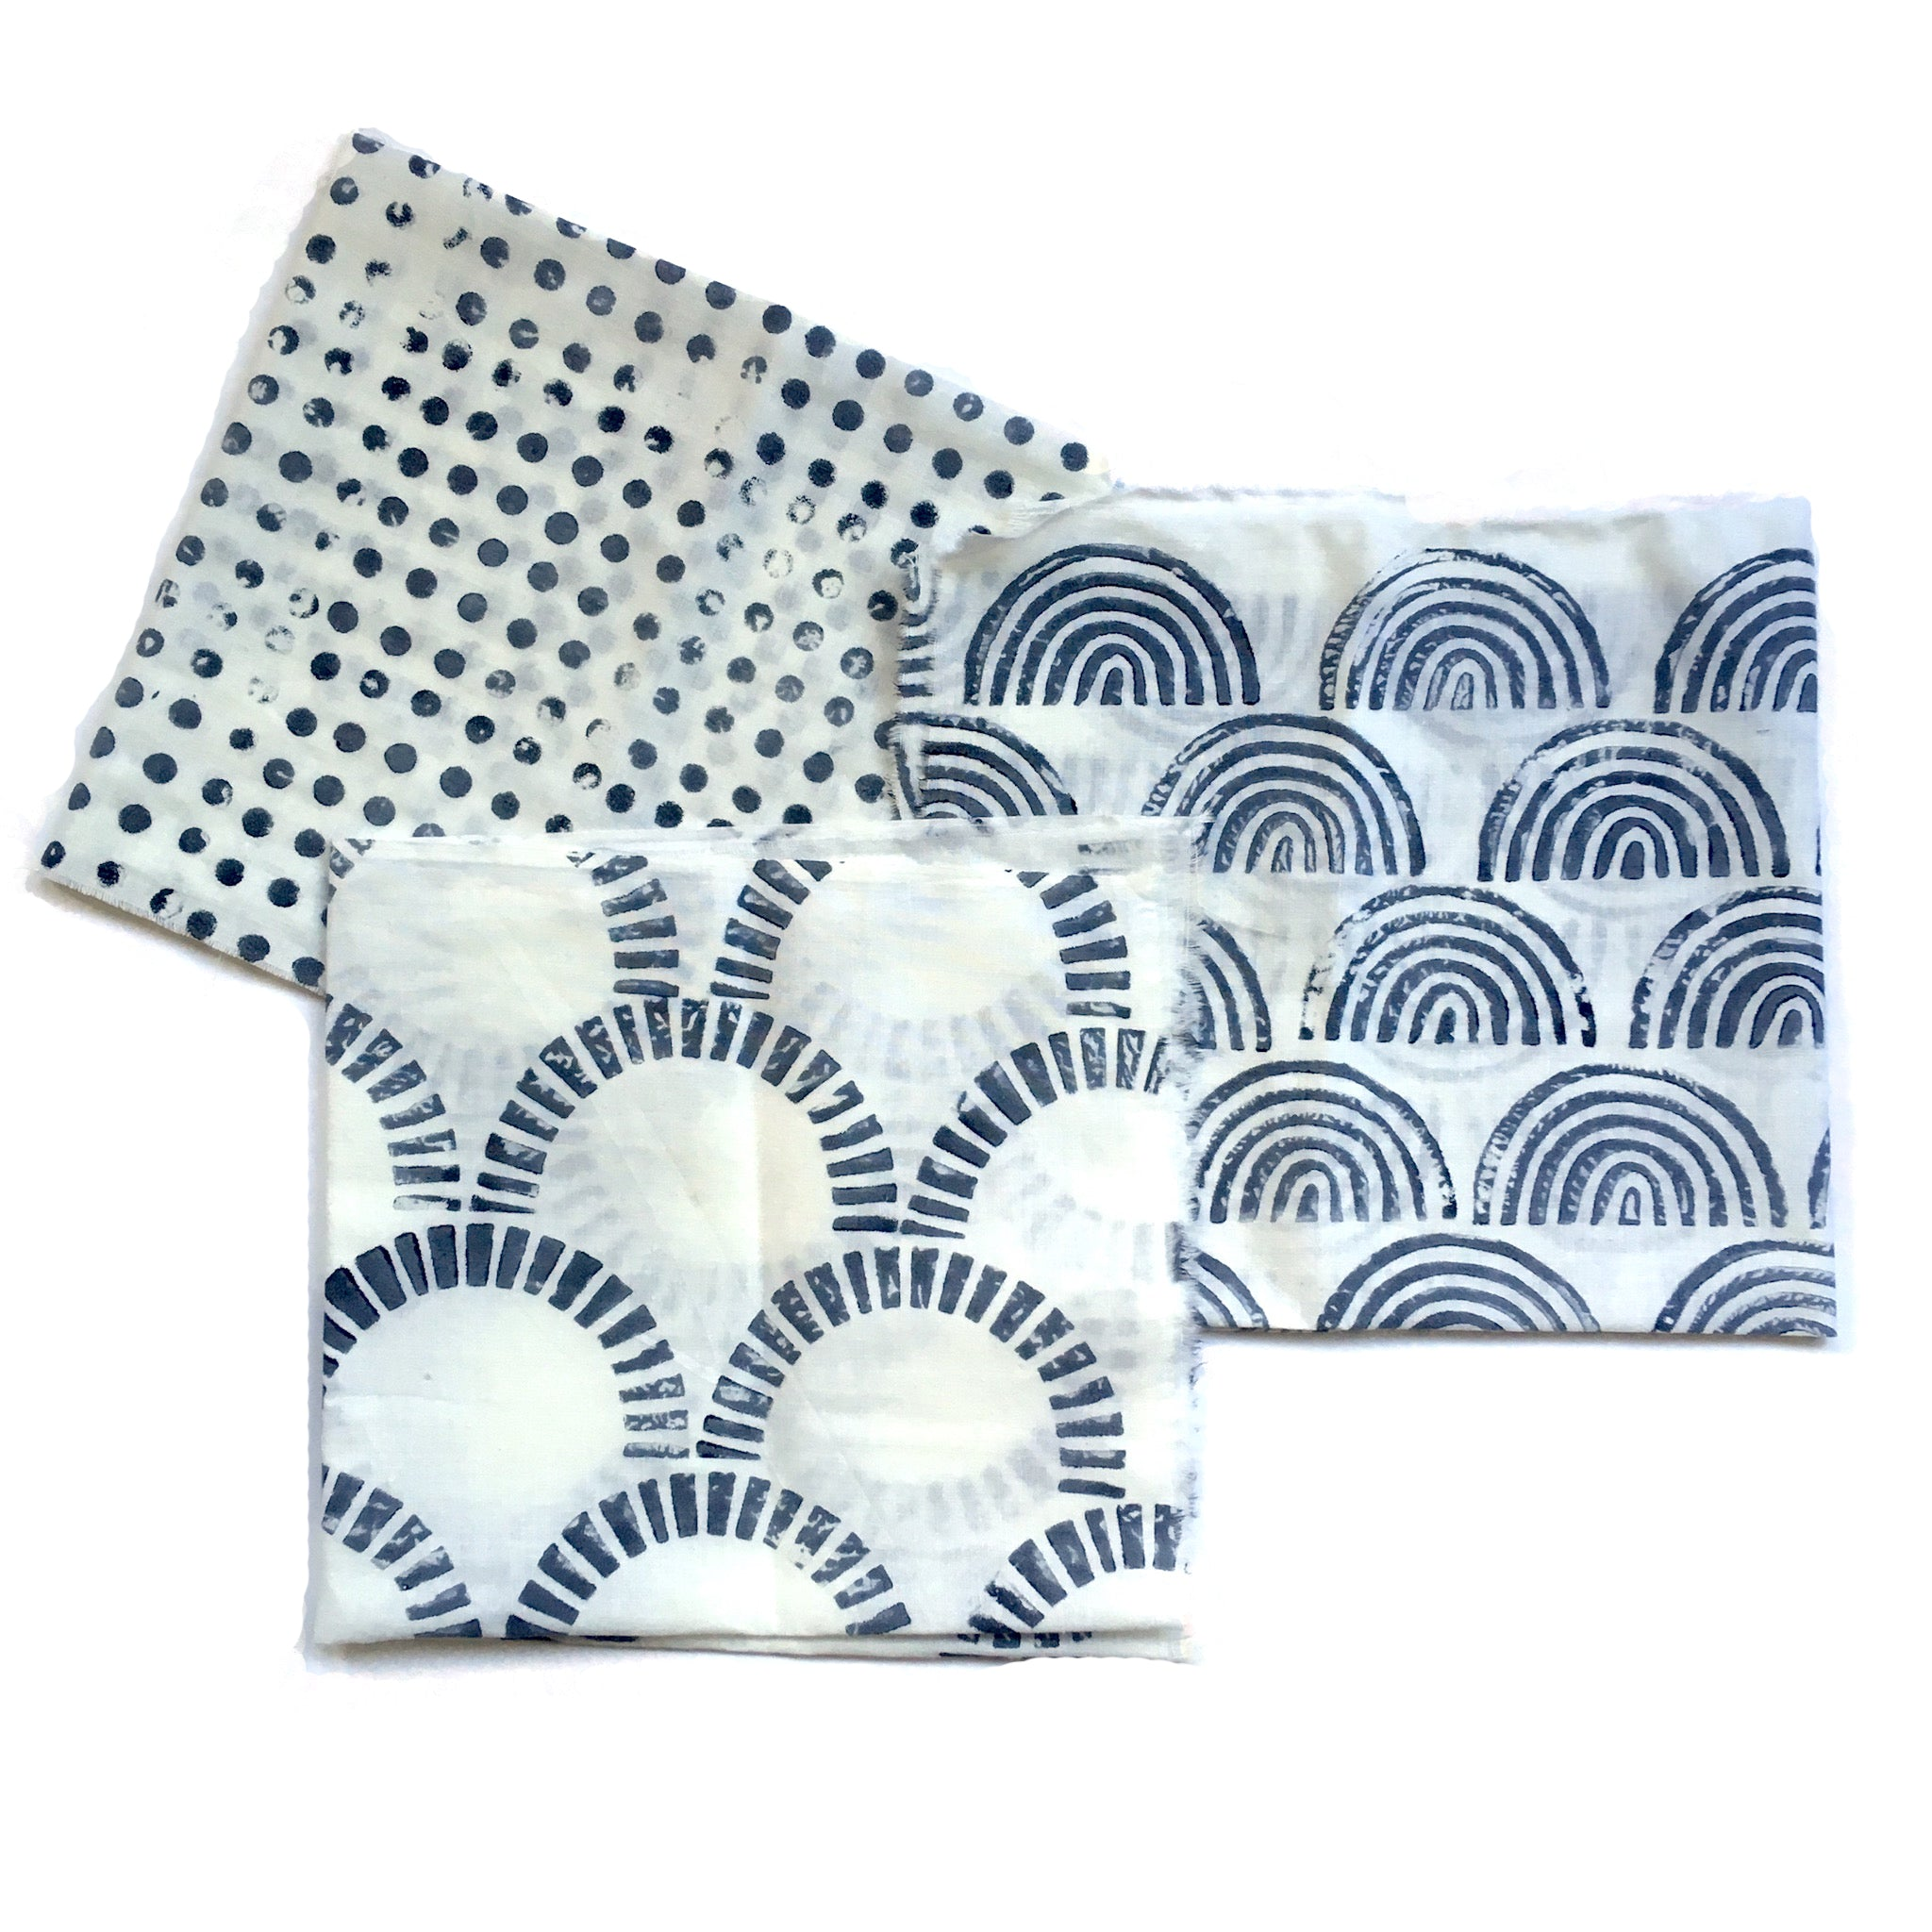 examples of fabrics block printed with indigo